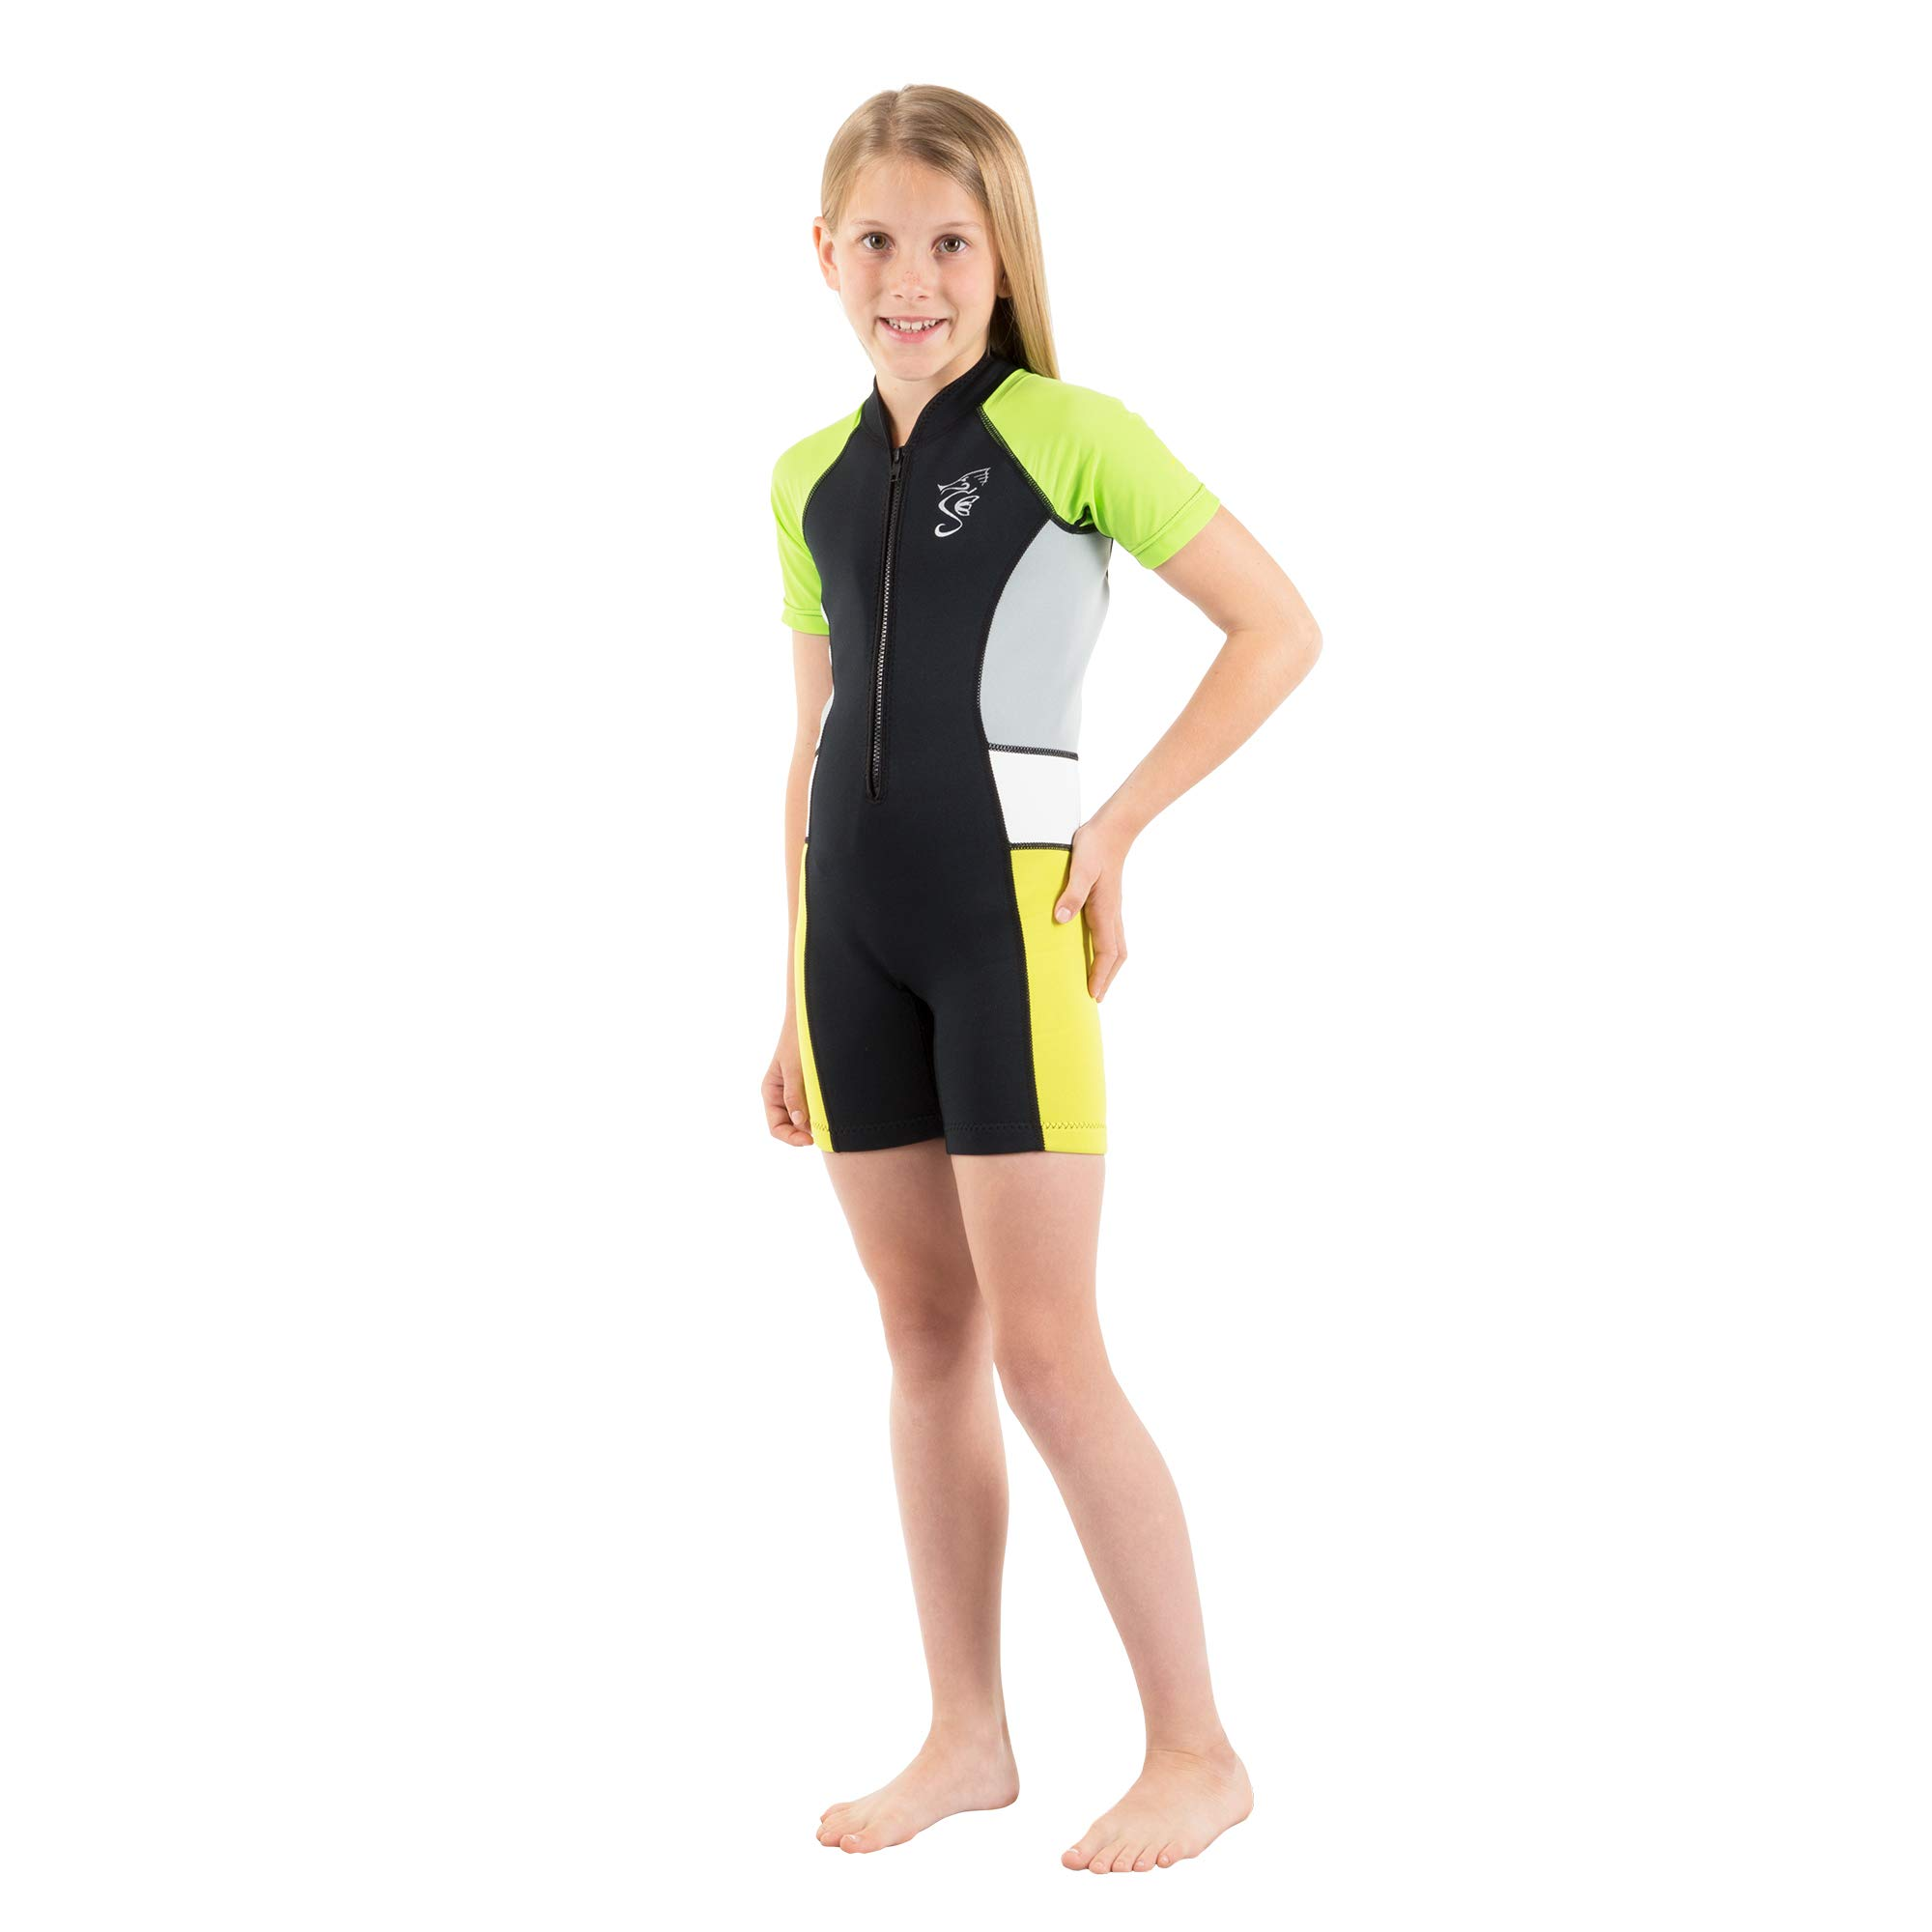 Seavenger Cadet 2mm Kids Shorty | Child Neoprene Wetsuit for Snorkeling, Surfing and Swimming (Yellow-Green, 3T) by Seavenger